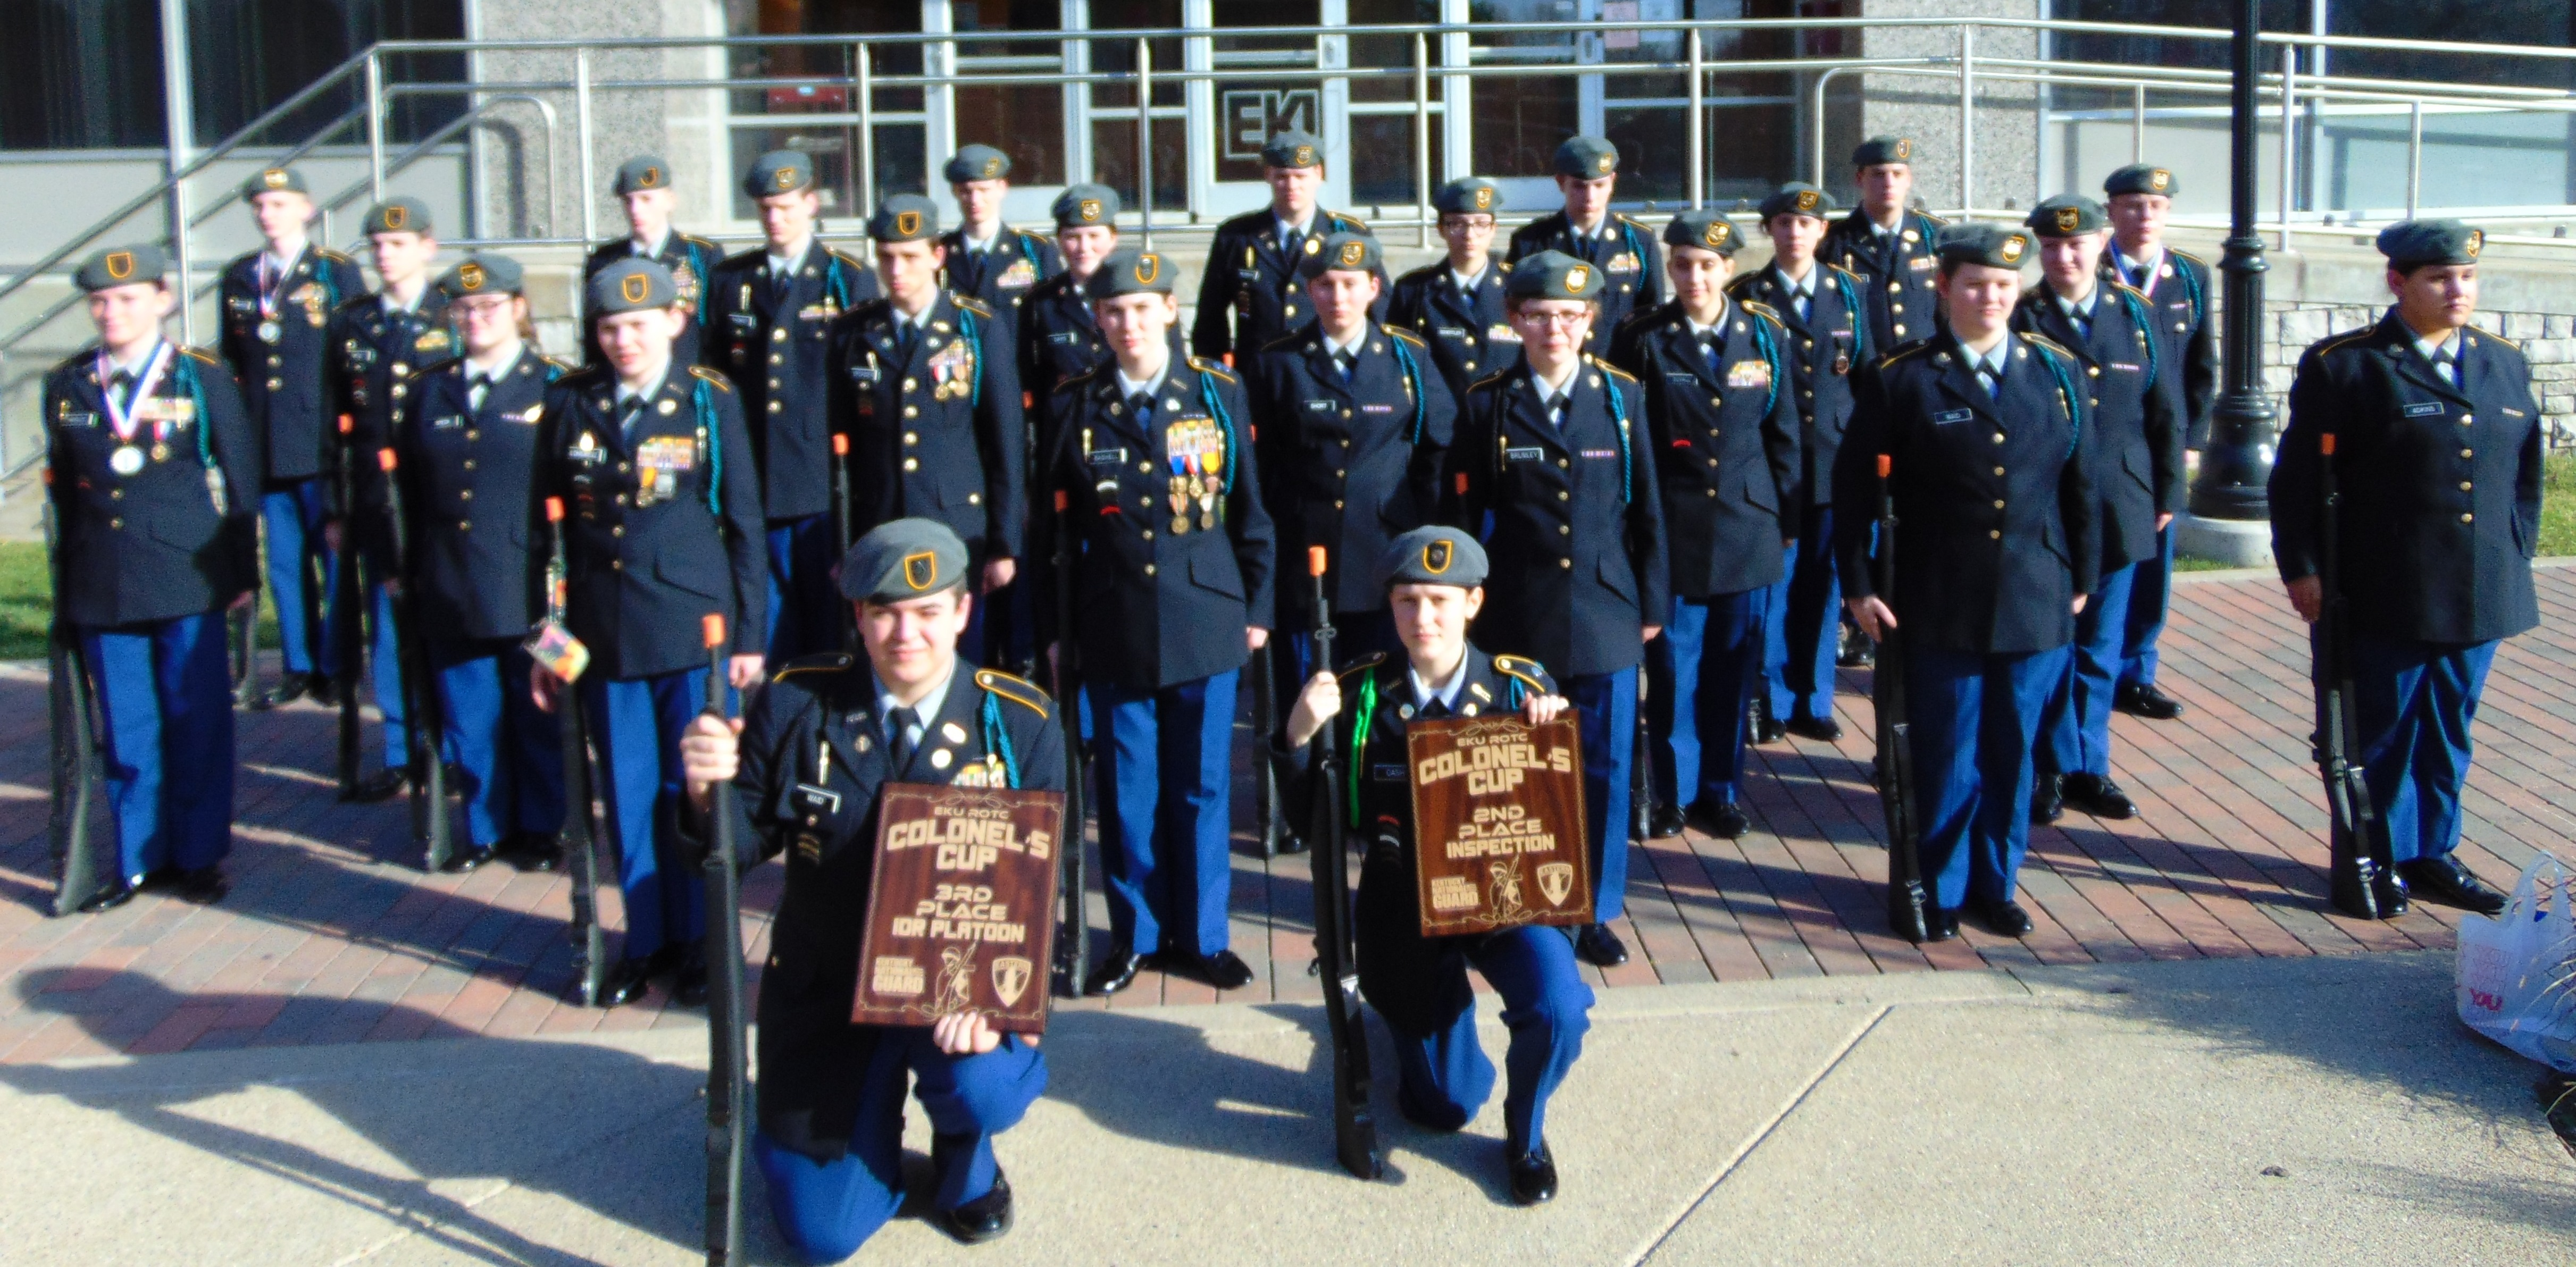 The CCHS JROTC Bulldog Battalion Drill Team won 2nd place in the Armed Platoon Inspection and 3rd place in the Armed Platoon Regulation Drill at the EKU JROTC Classic on March 4th.